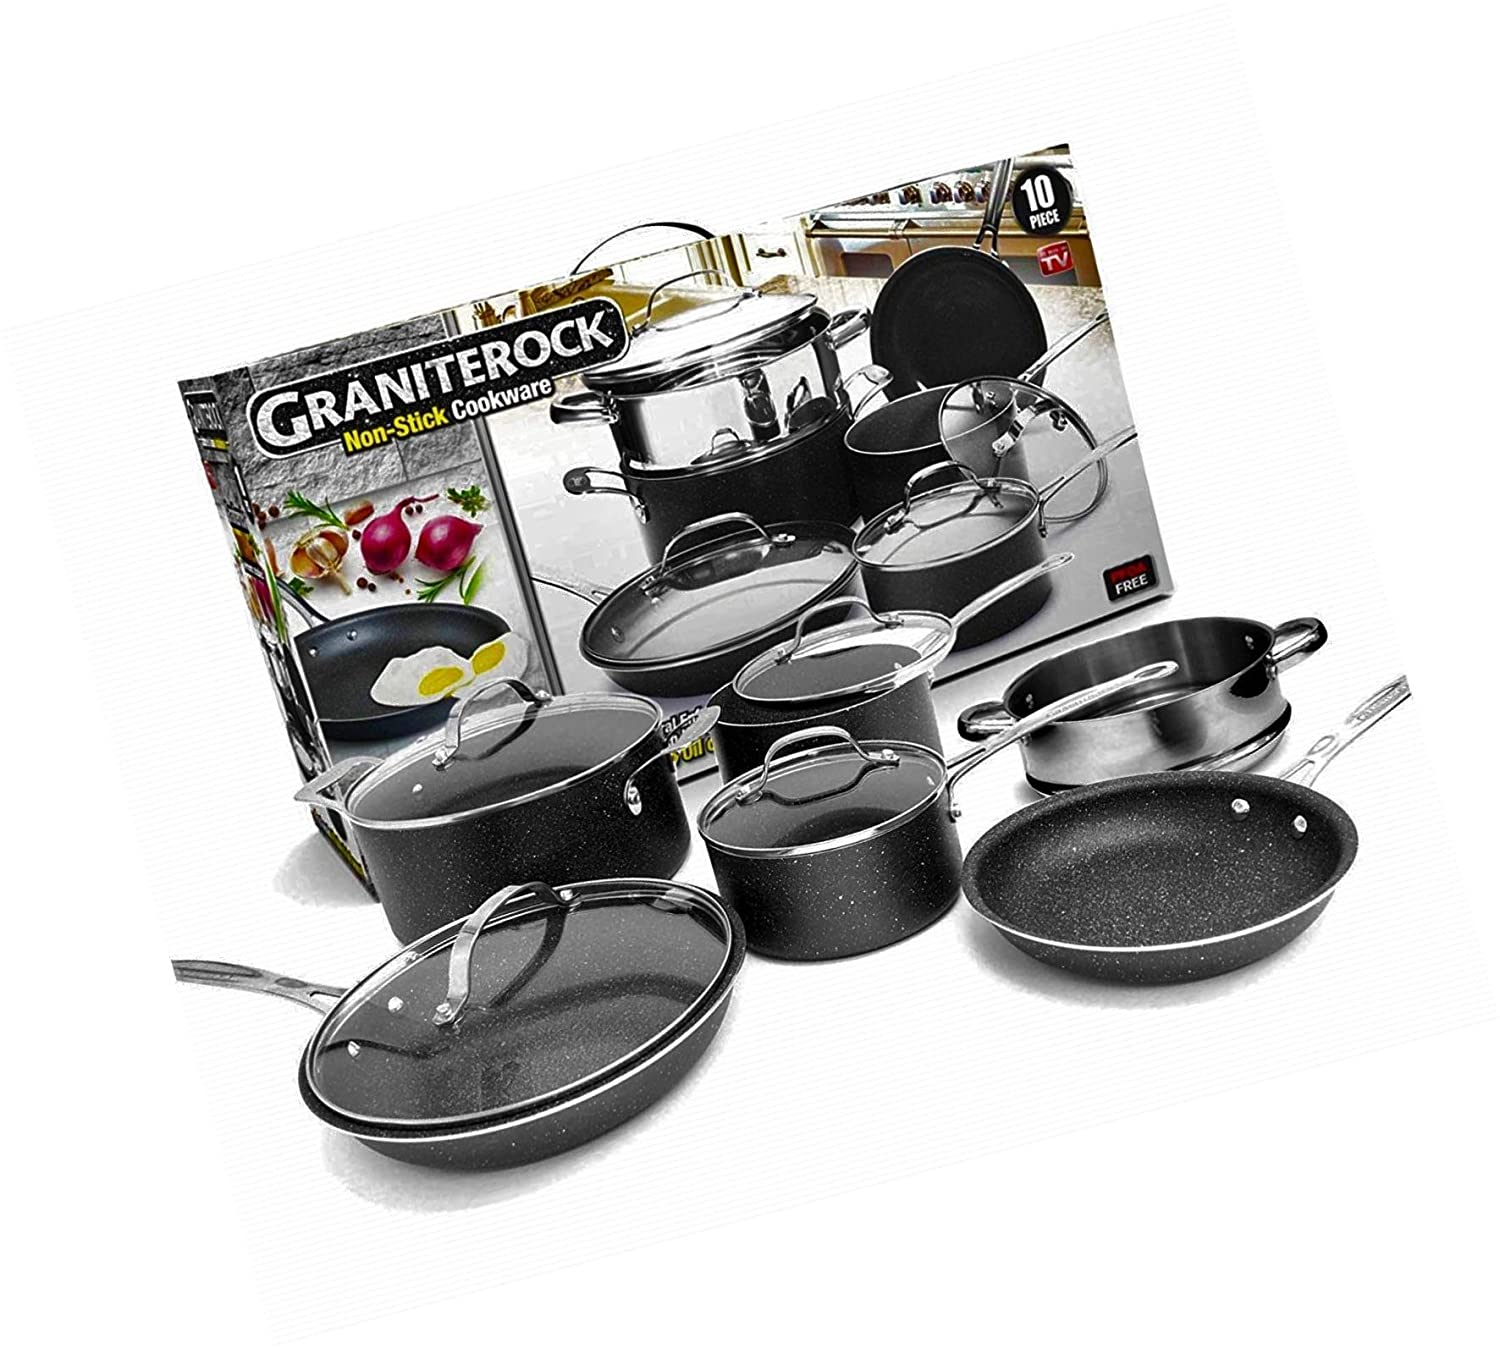 Ultra Durable Scratch Proof Complete Cookware Set Granite Rock 10-Piece Nonstick New